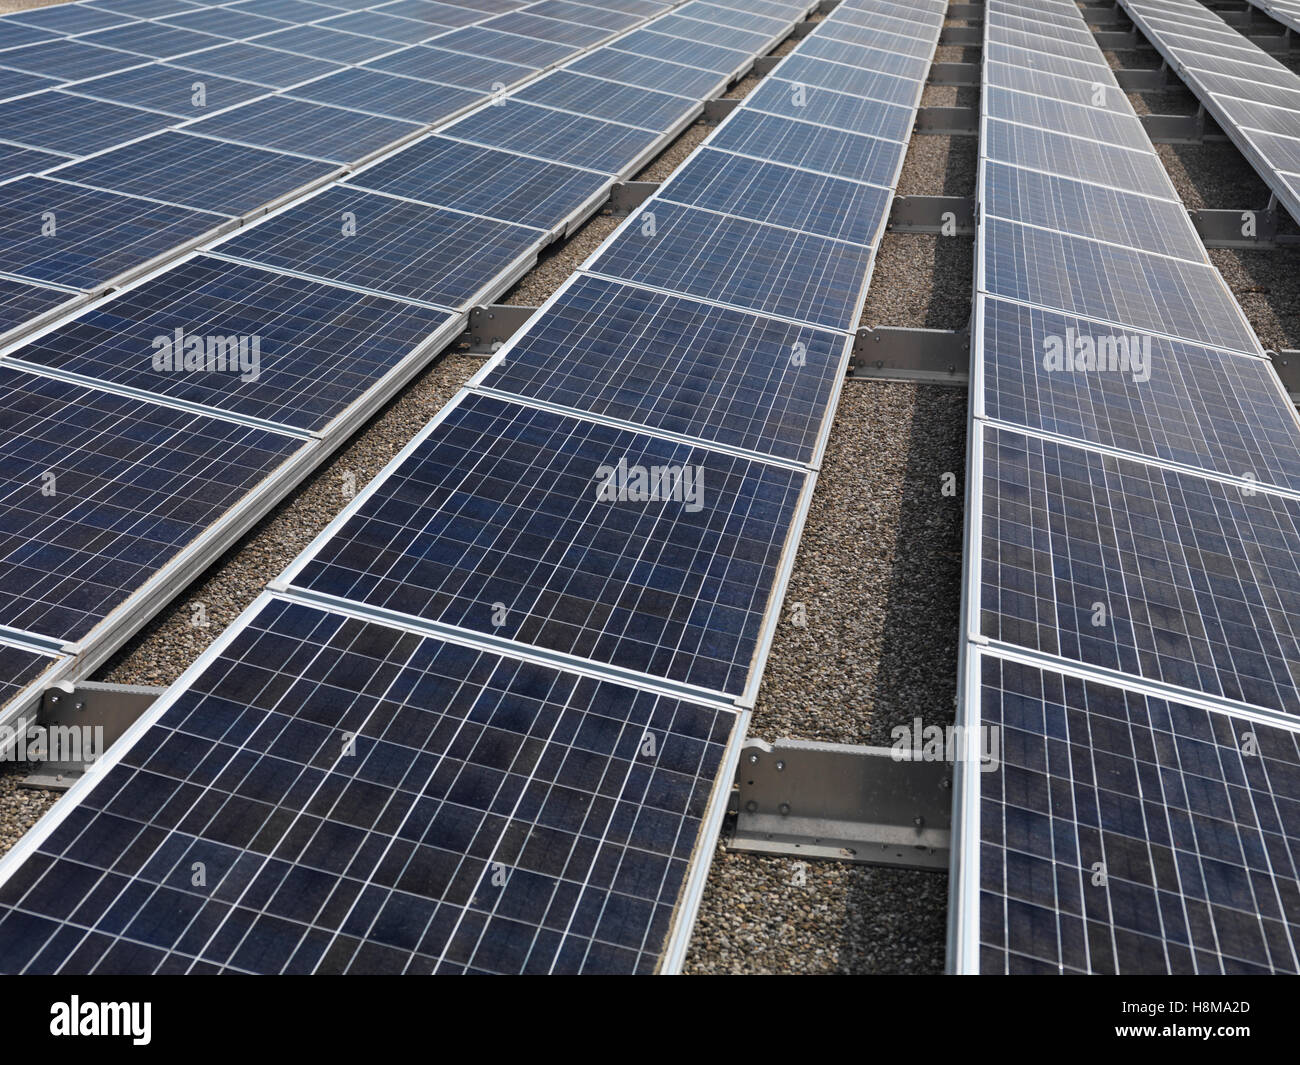 Solar Panel Roof Building Stock Photos Amp Solar Panel Roof